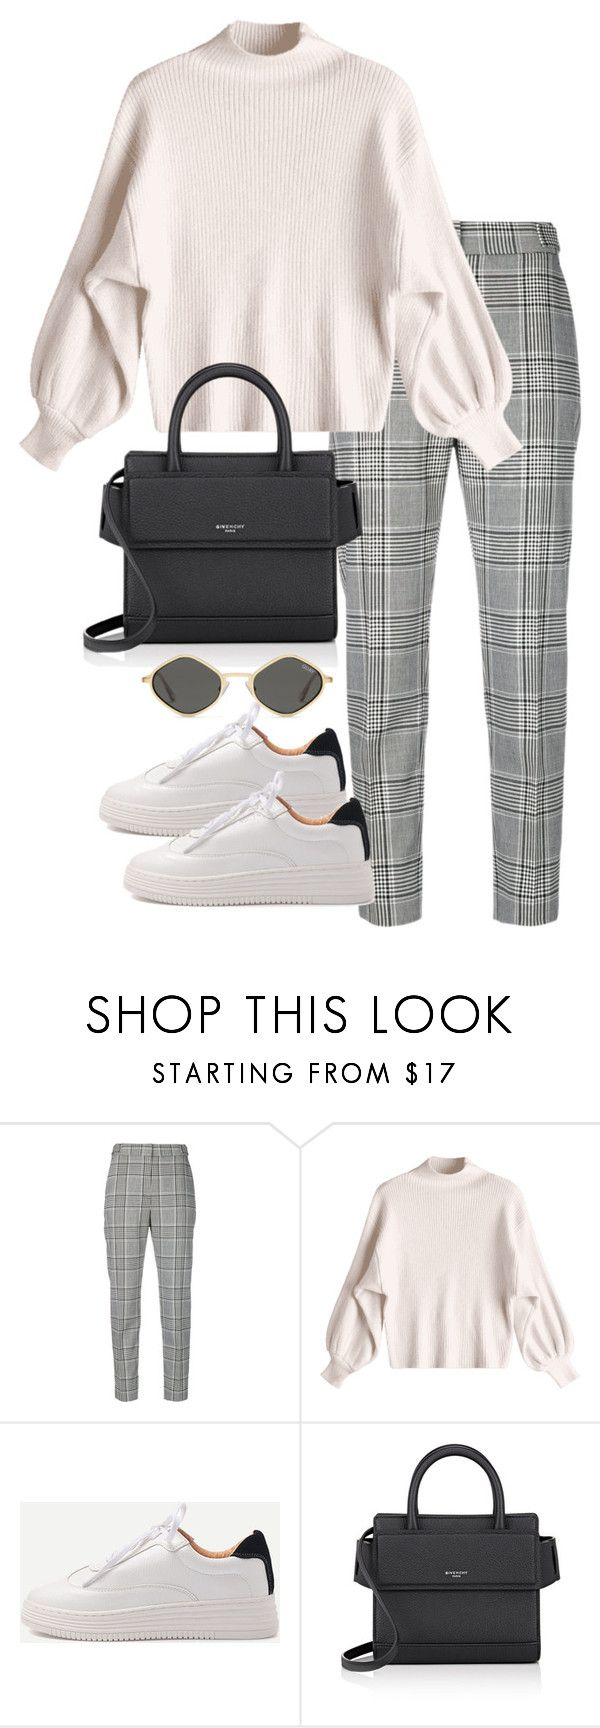 """Untitled #4745"" by theeuropeancloset ❤ liked on Polyvore featuring Alexander Wang, WithChic and Givenchy"